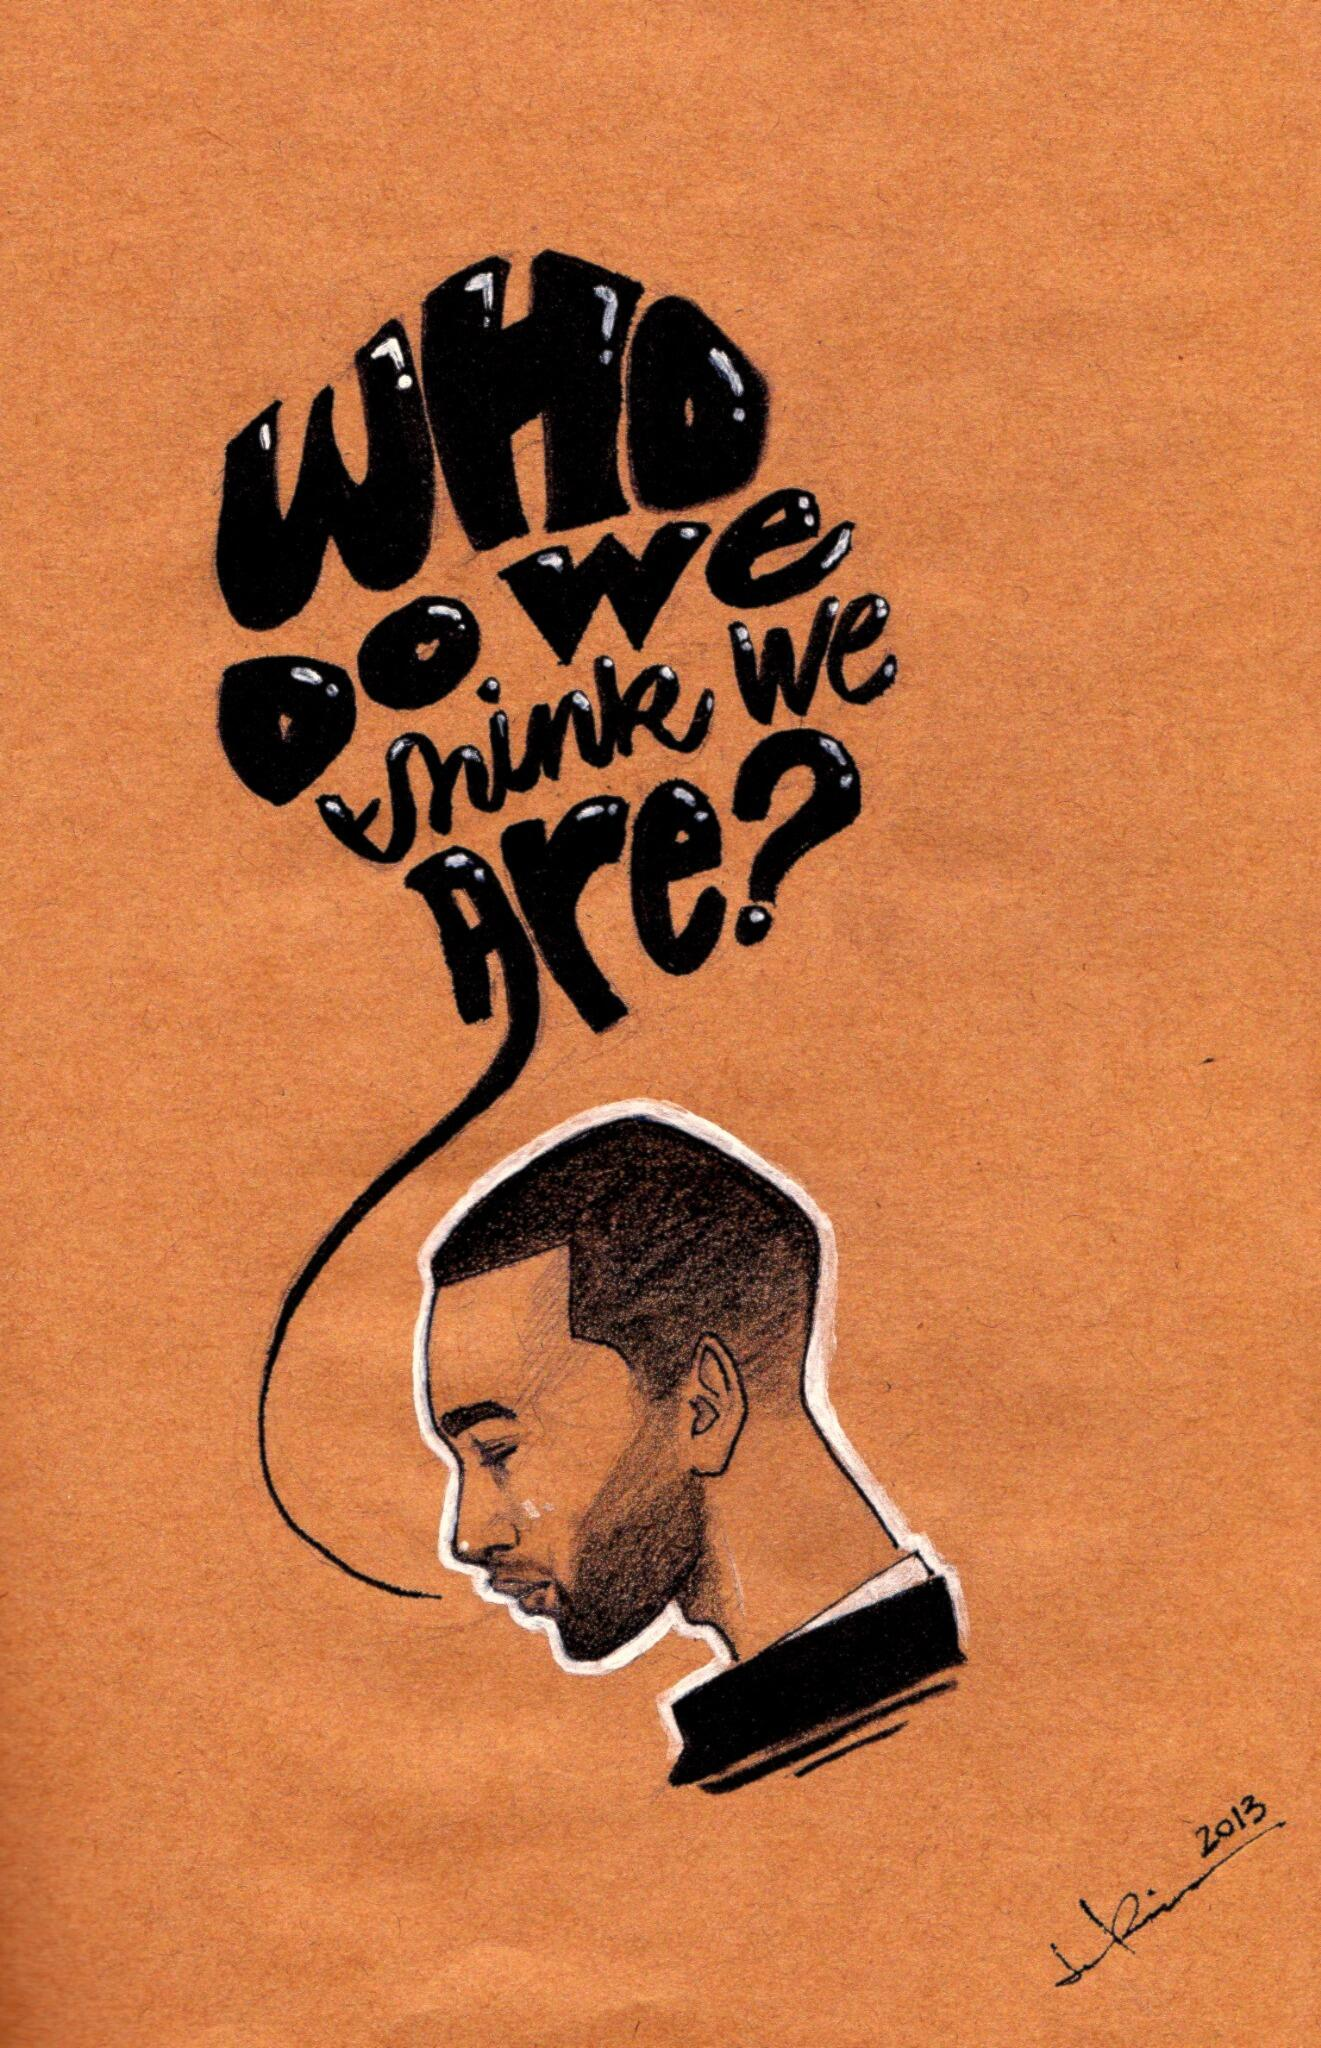 Made an illustration of @johnlegend #whodowethinkweare #loveinthefuture http://t.co/R3XryoACot